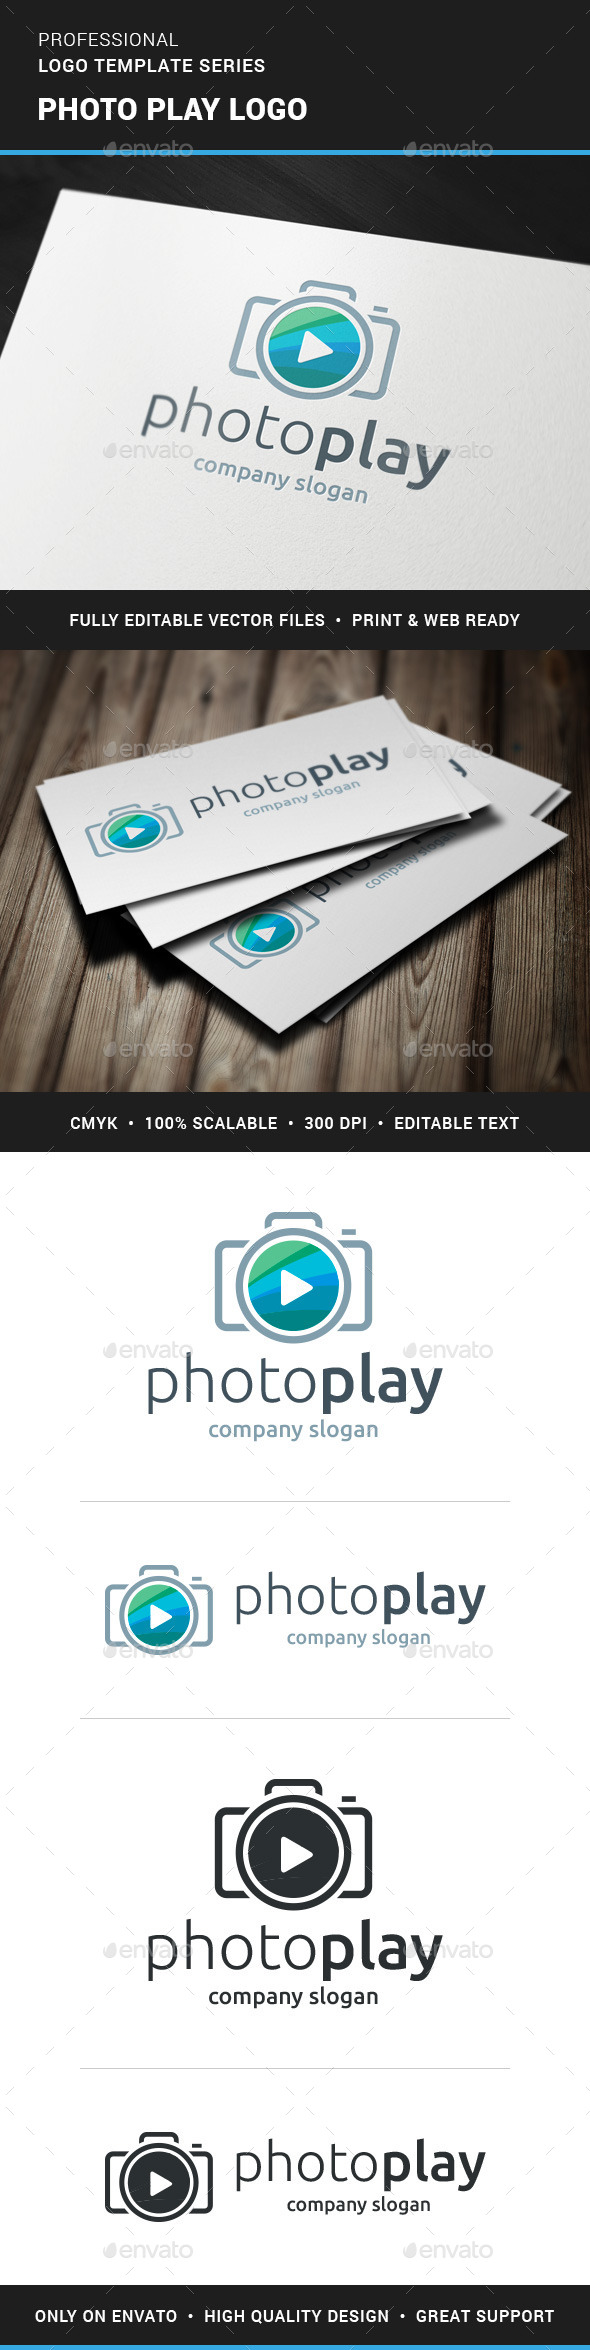 GraphicRiver Photo Play Logo Template 11541441